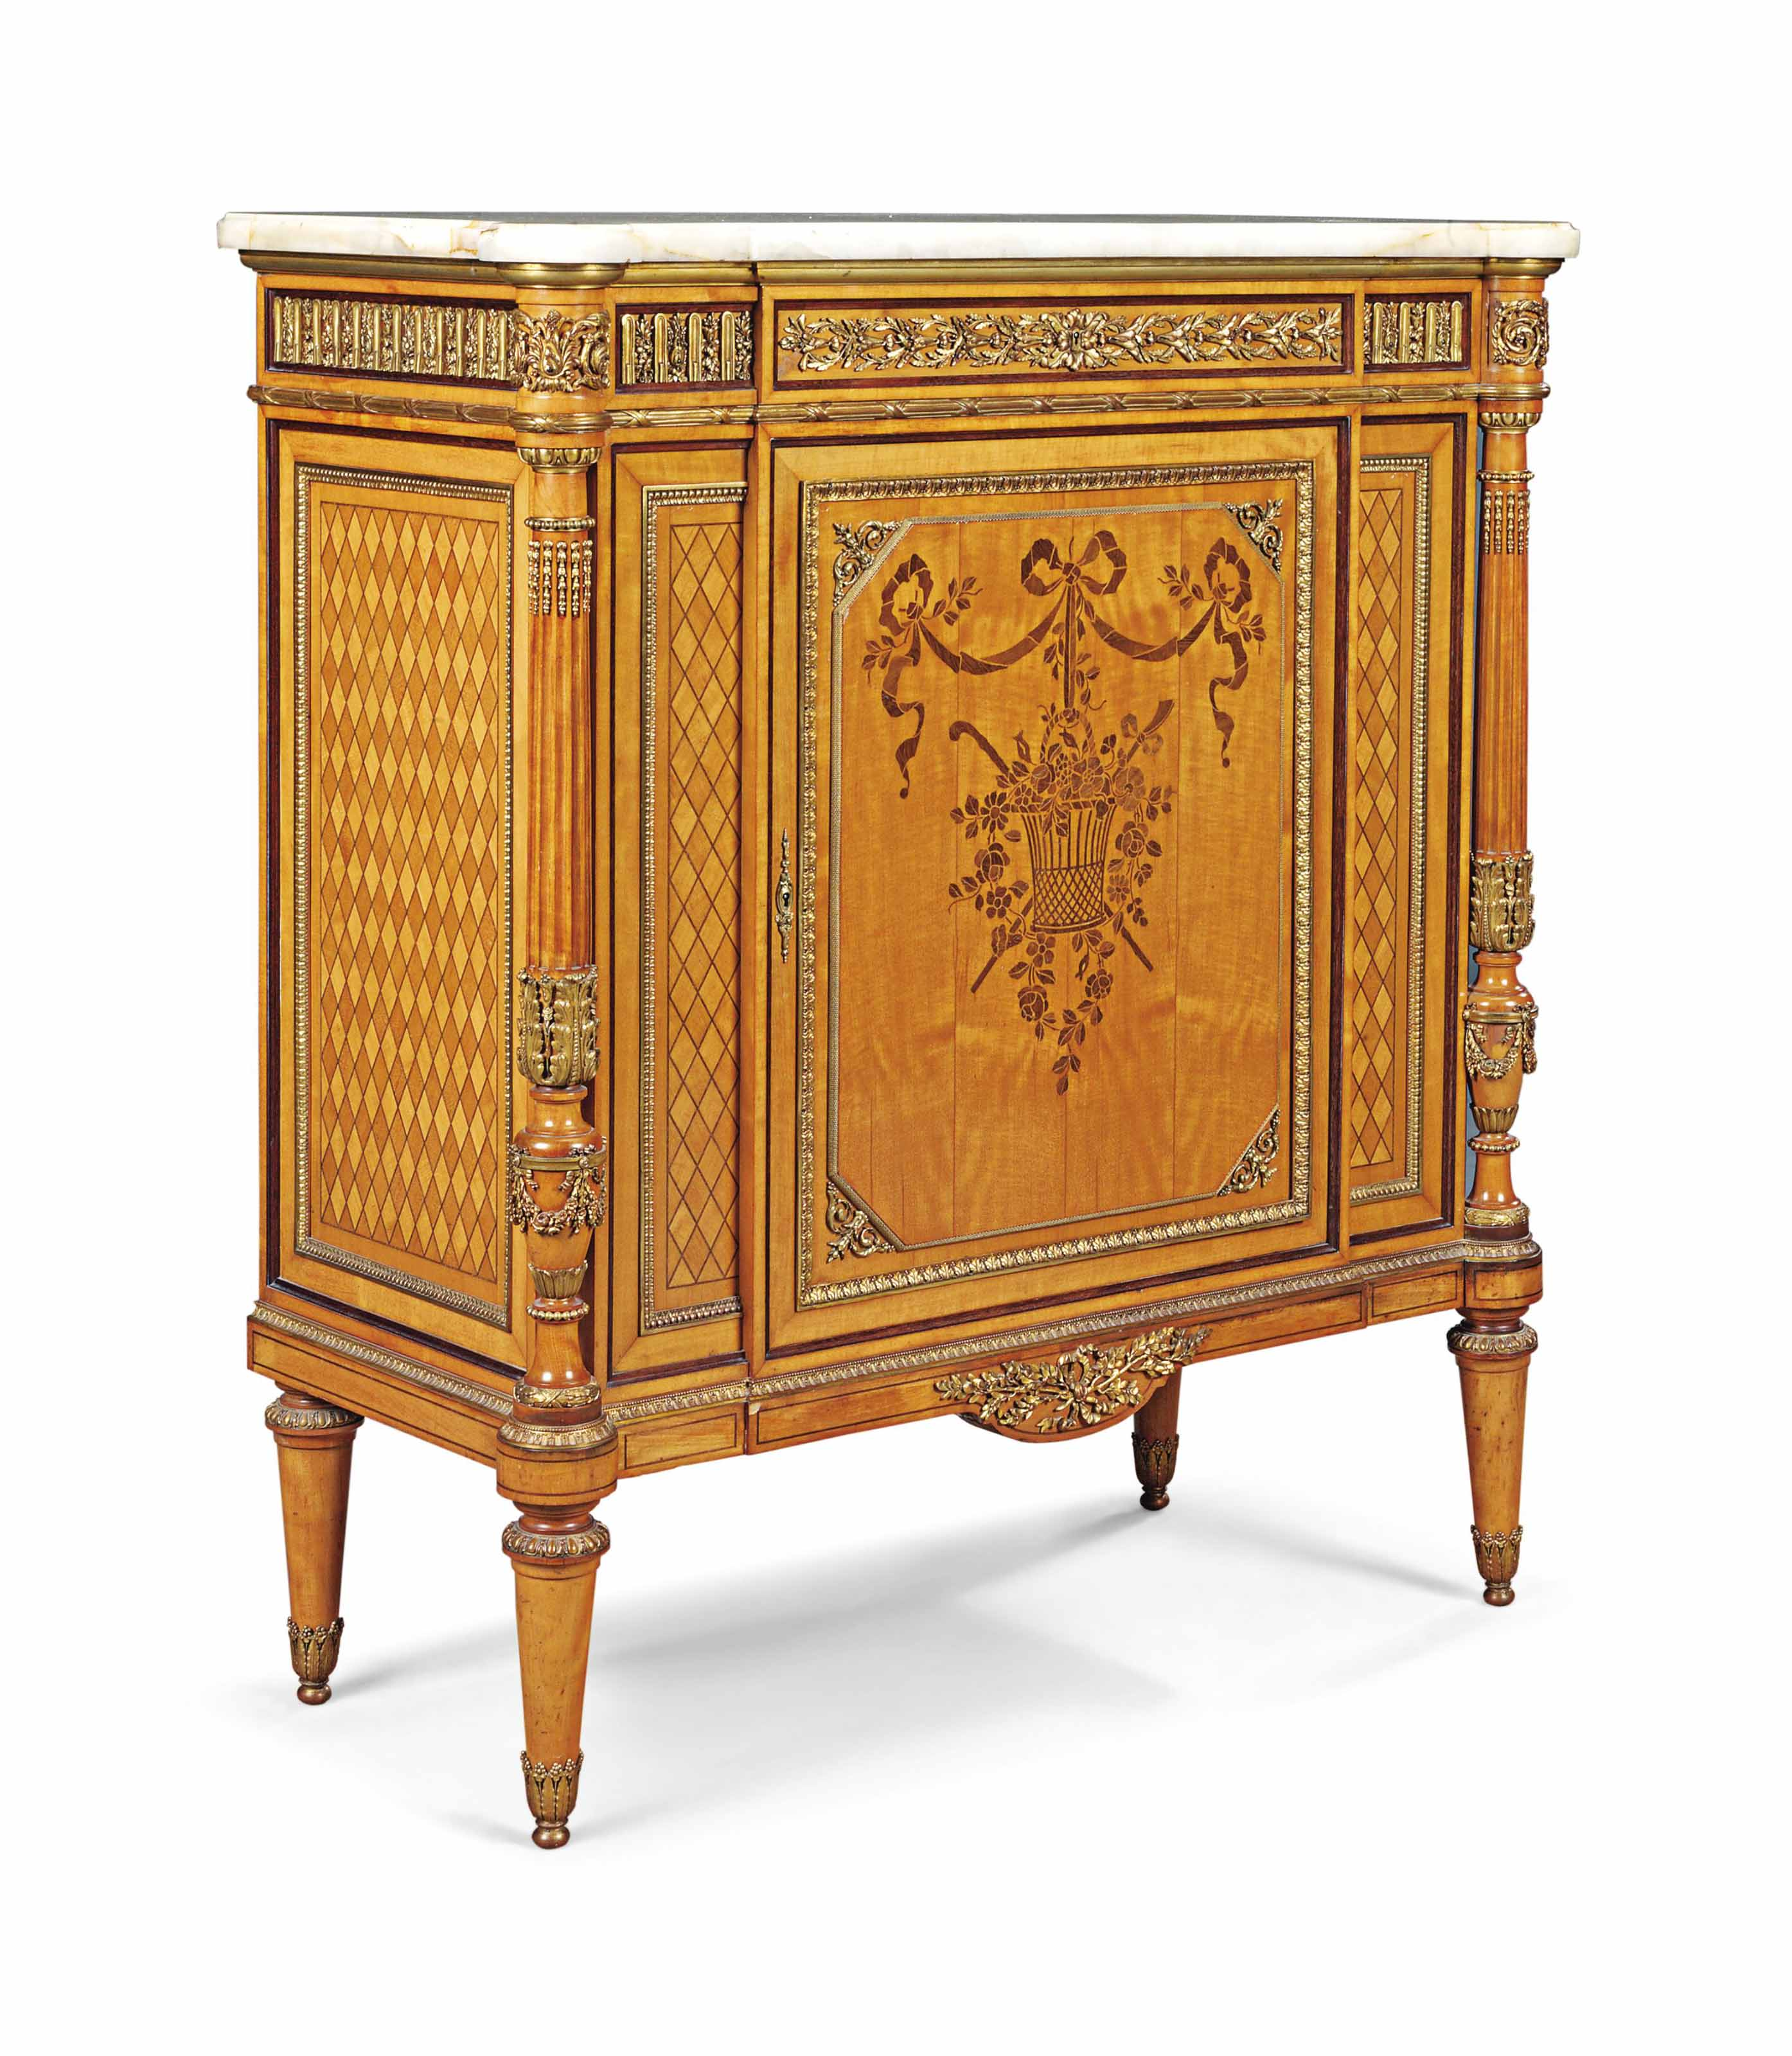 A FRENCH ORMOLU-MOUNTED SATINWOOD MARQUETRY AND PARQUETRY MEUBLE A HAUTEUR D'APPUI